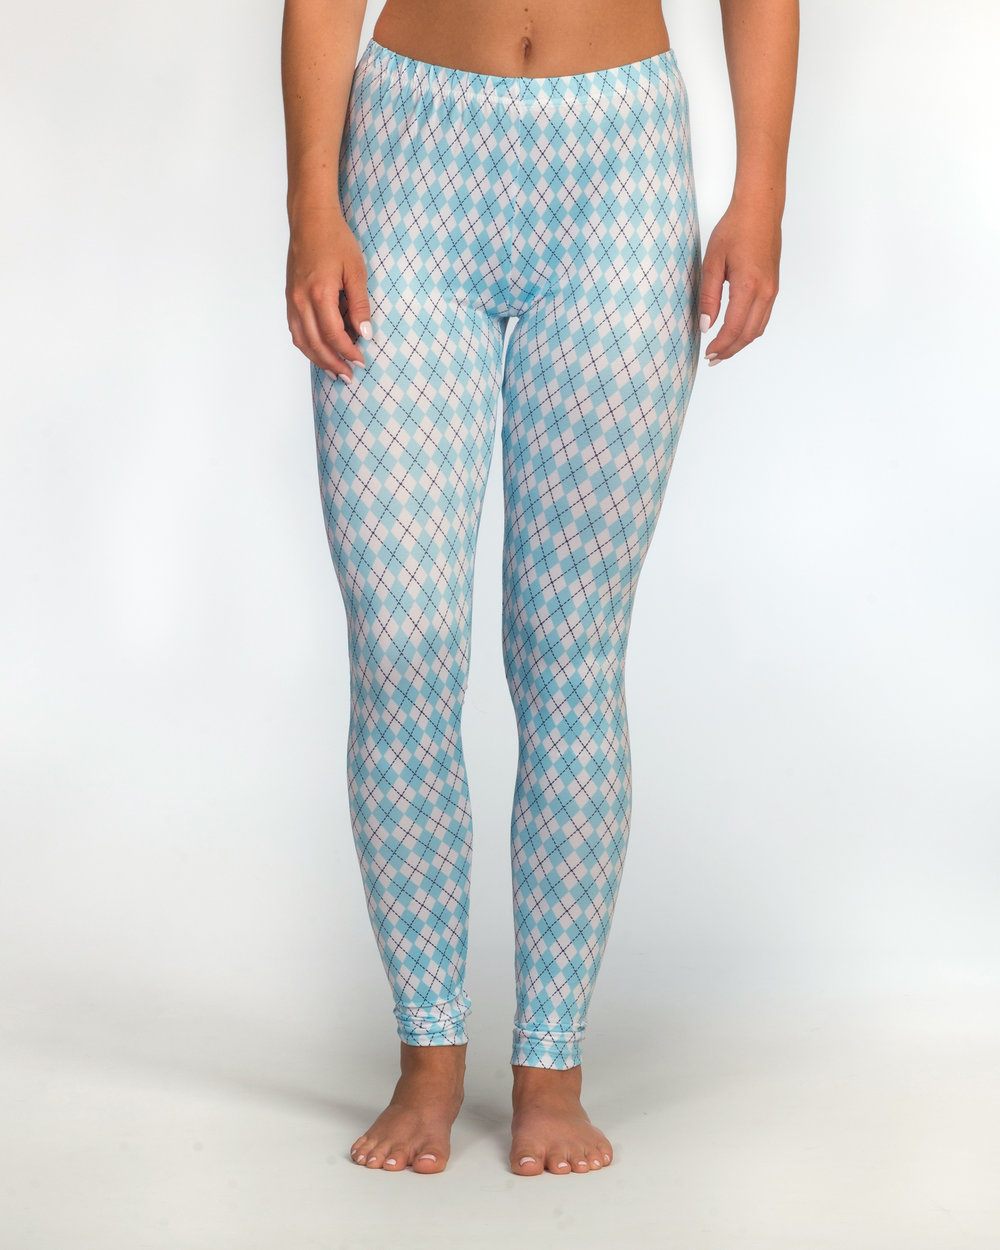 """Madison is 5' 6"""" tall, has 31"""" hips, and is rockin' a size S in Gameday Leggings UNC Argyle."""